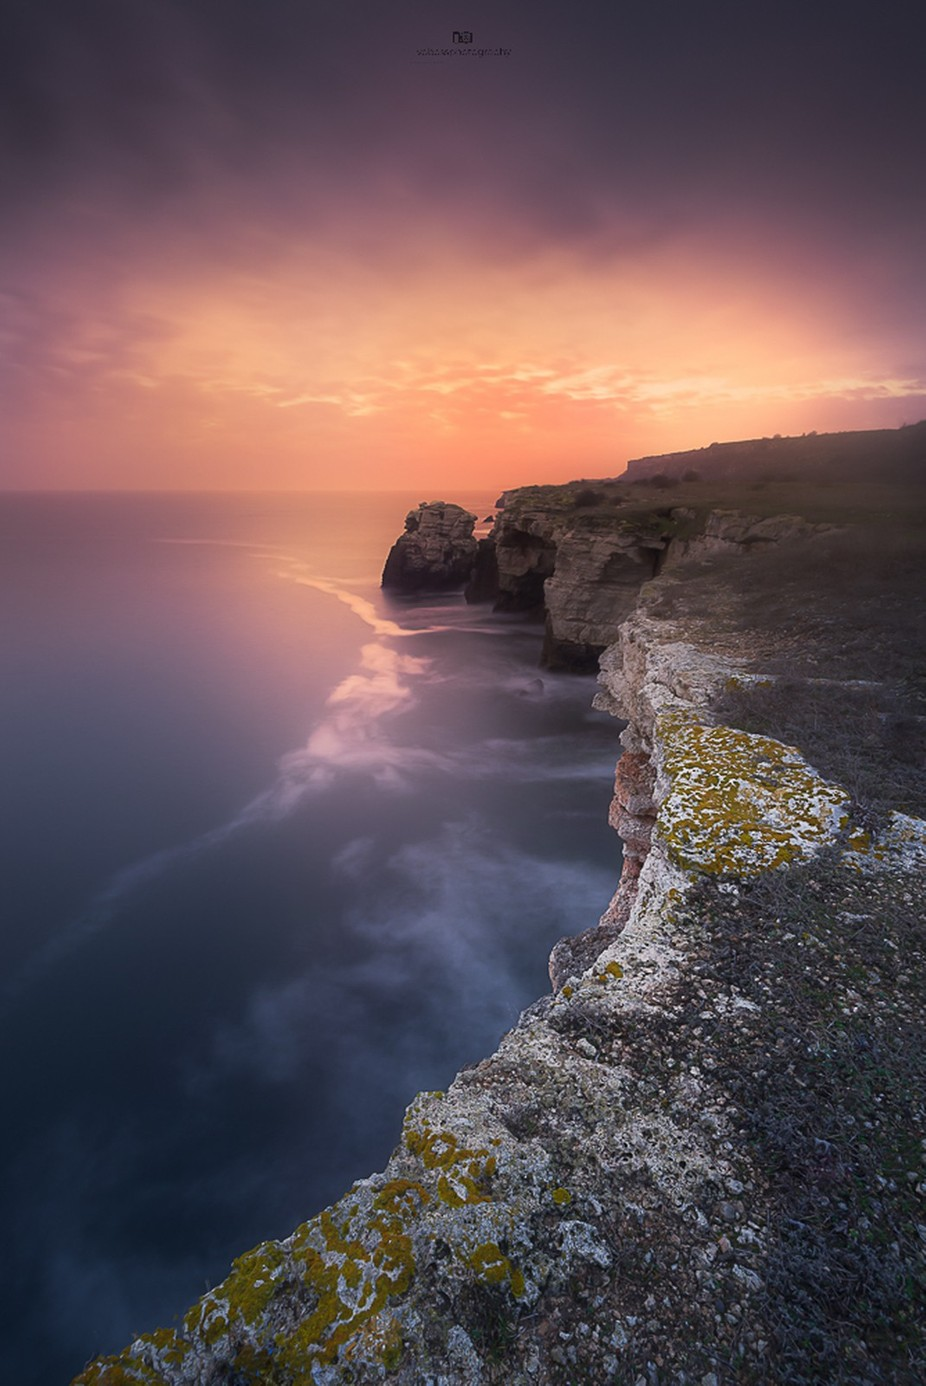 Morning from Seashore by ivailobosev - Rule Of Seconds Photo Contest vol1